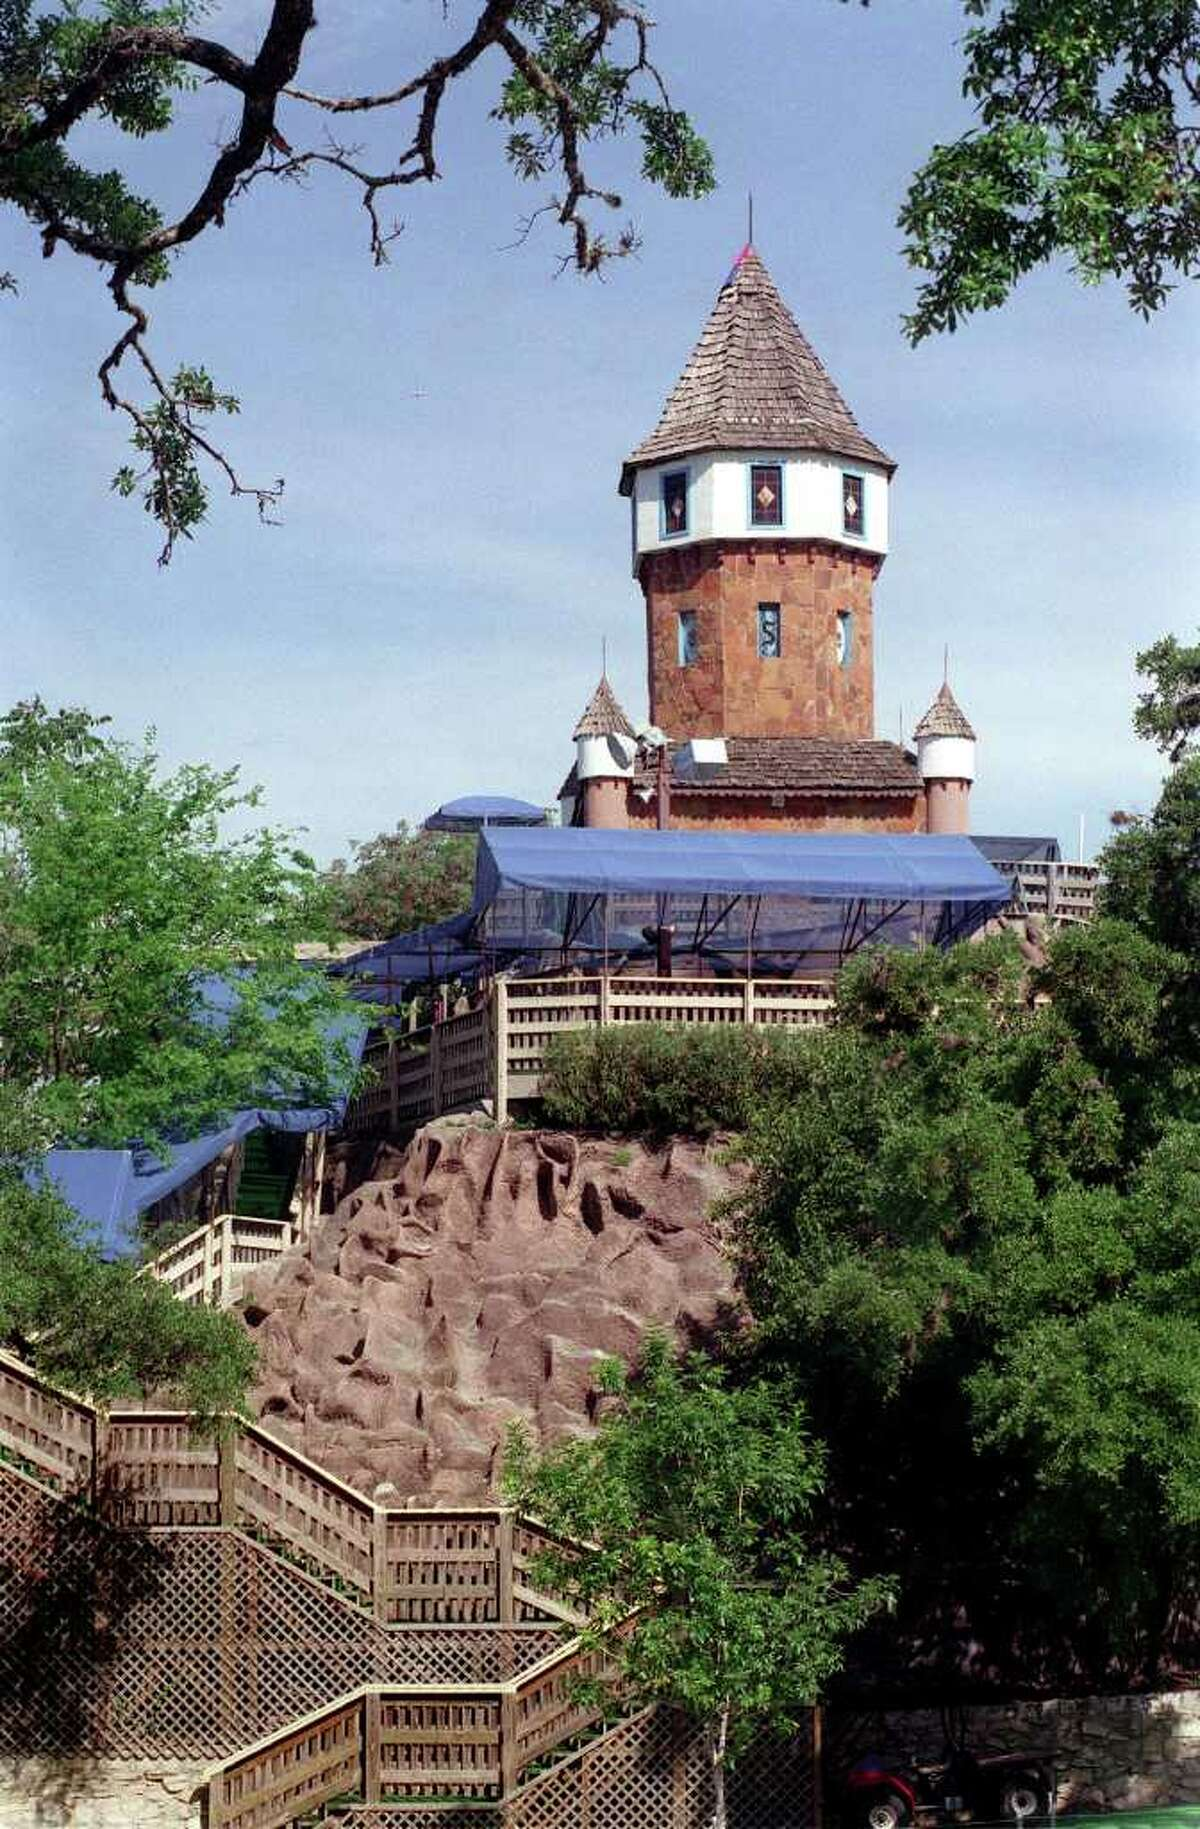 TRAVEL THE CASTLE AT SCHLITTERBAHN IS SOMETHING OF A LANDMARK IN NEW BRAUNFELS. THE WATER RESORT HAS EXPANDED DOWNSTREAM FROM THIS ORIGINAL LOCATION. 4/4/99